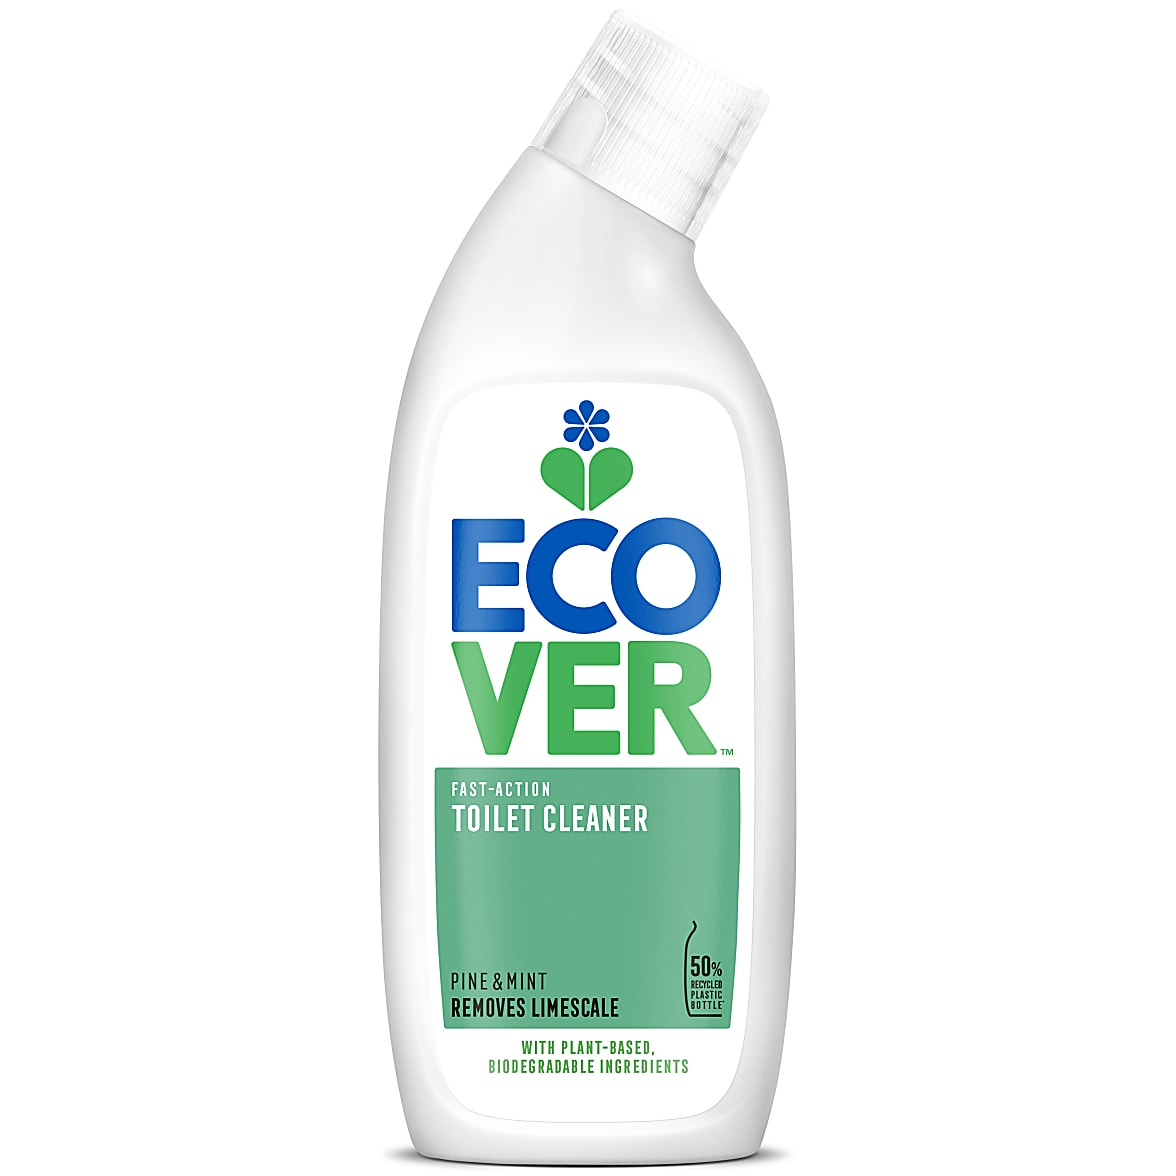 Ecover Toilet Cleaner |750ml Pine Fresh Toilet Cleaner from Ecover ...